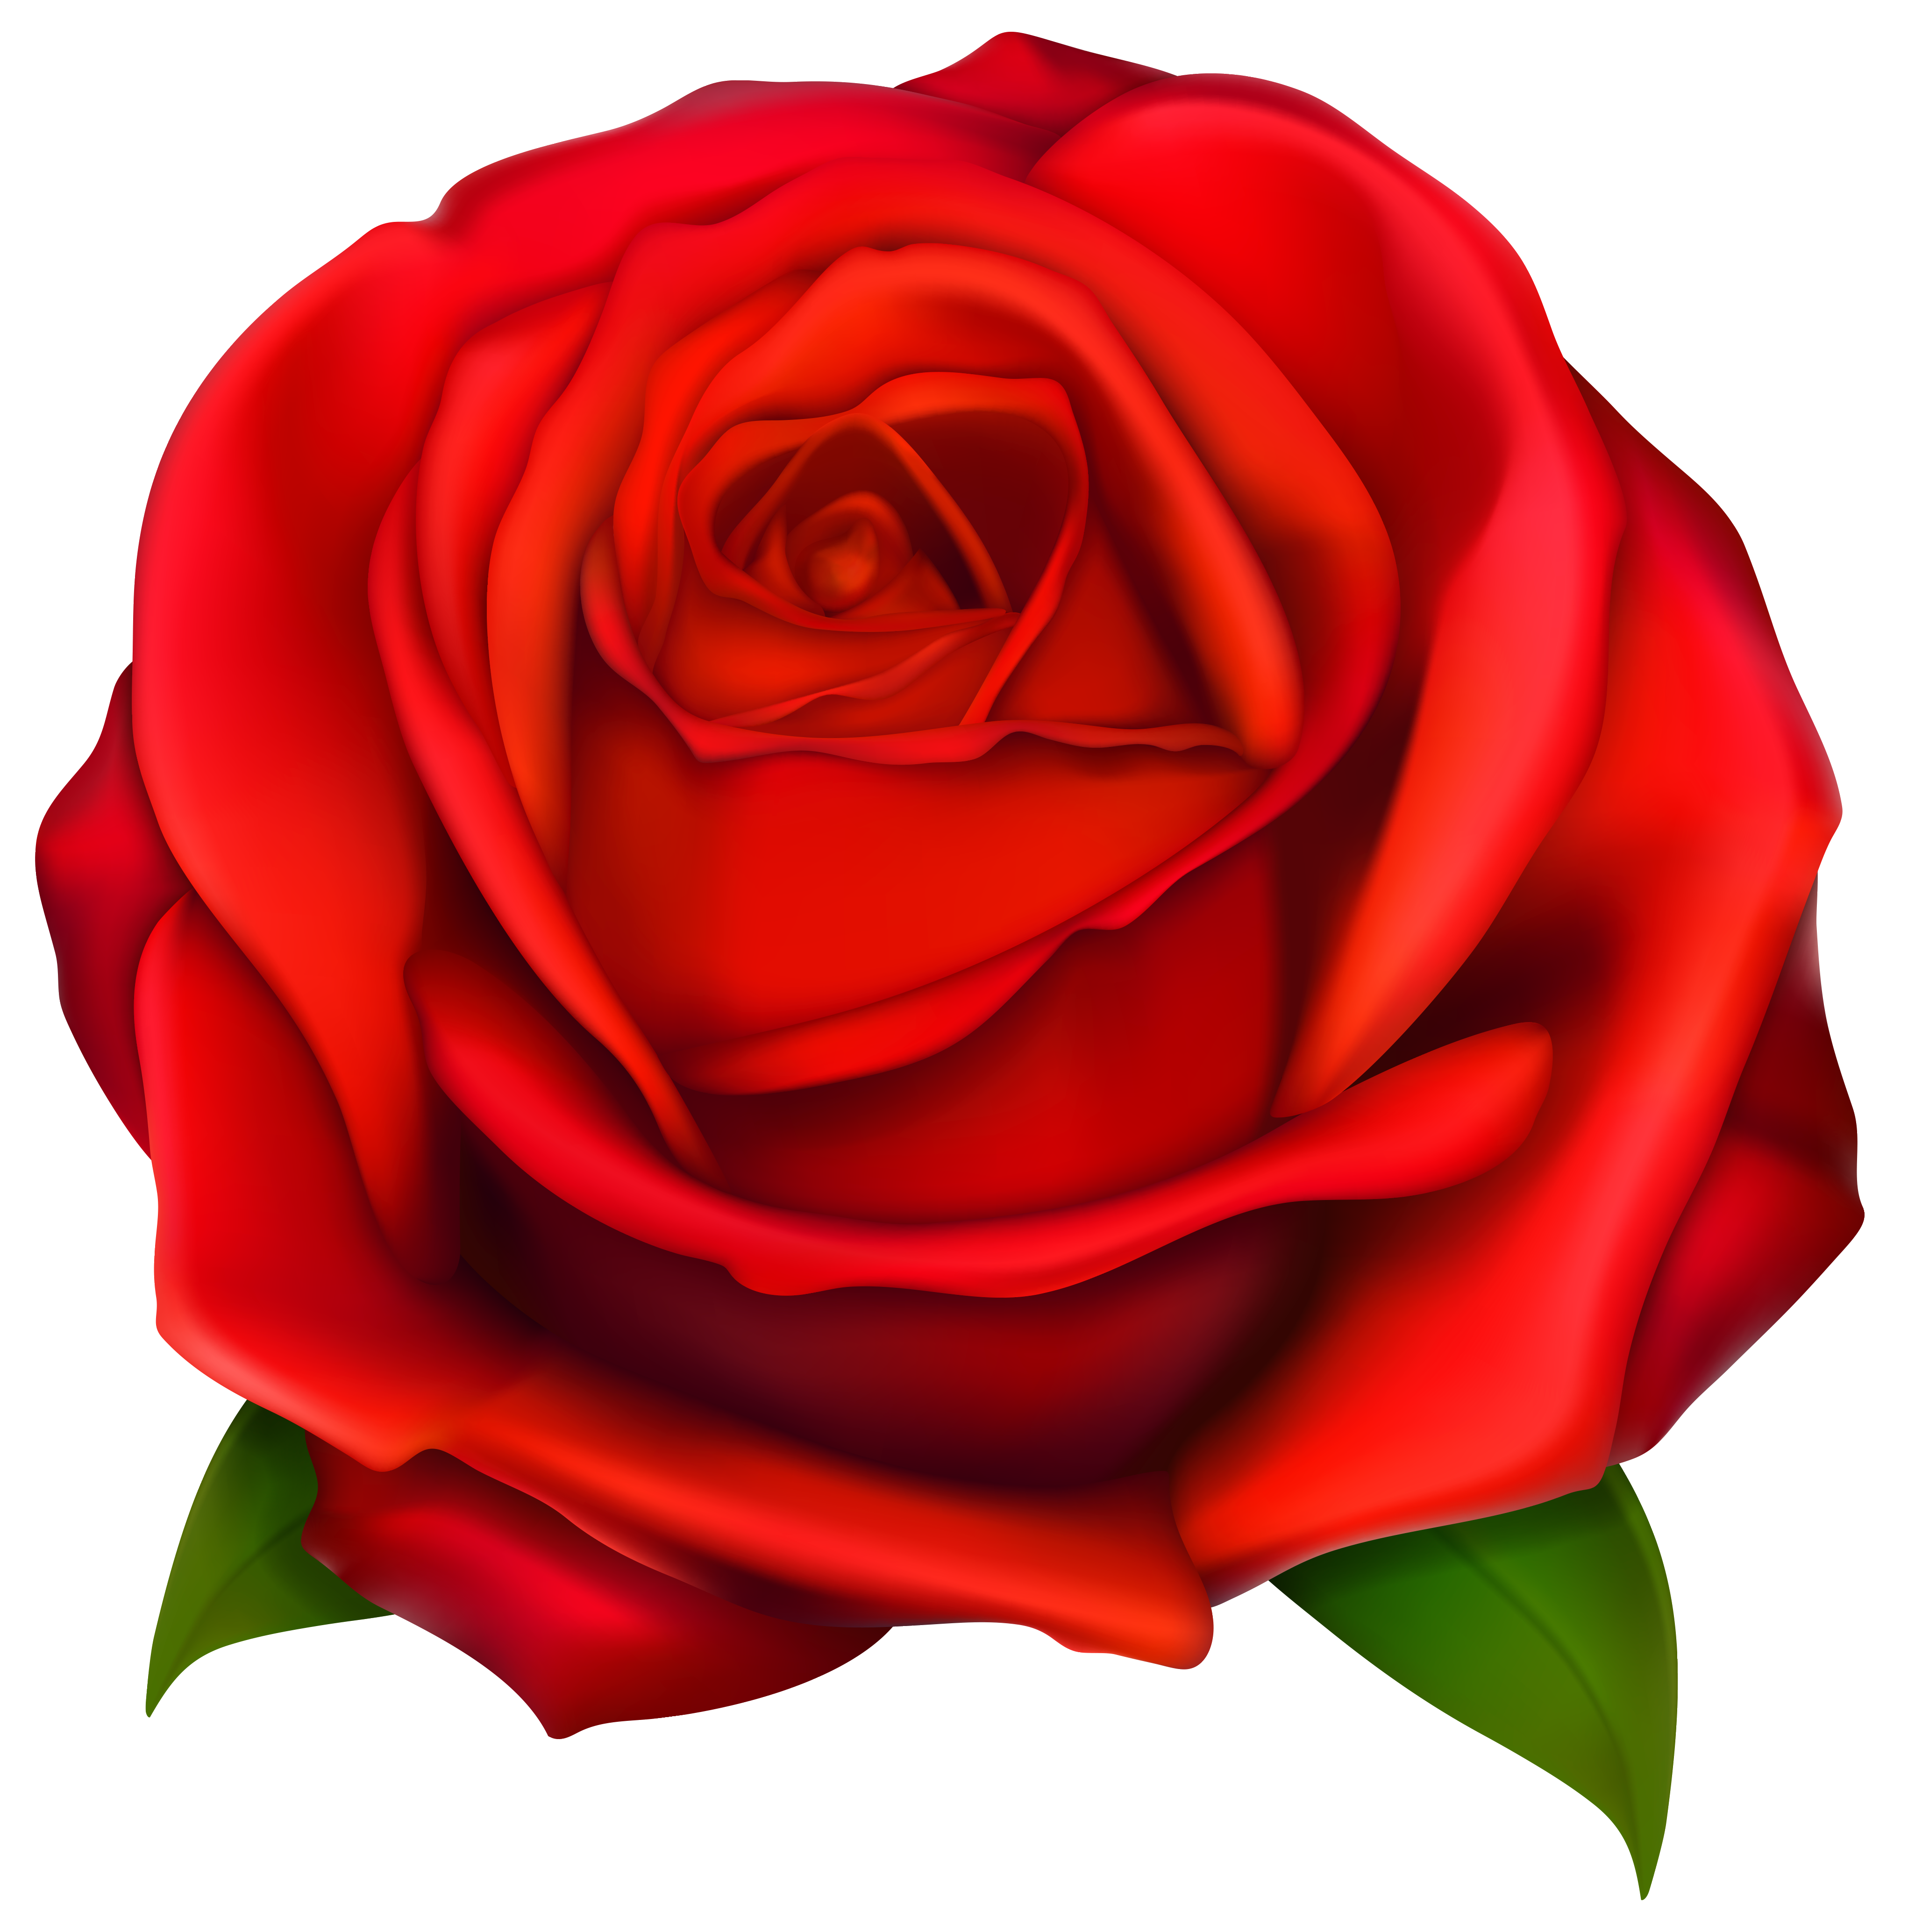 Cartoon rose png. Transparent red clipart gallery